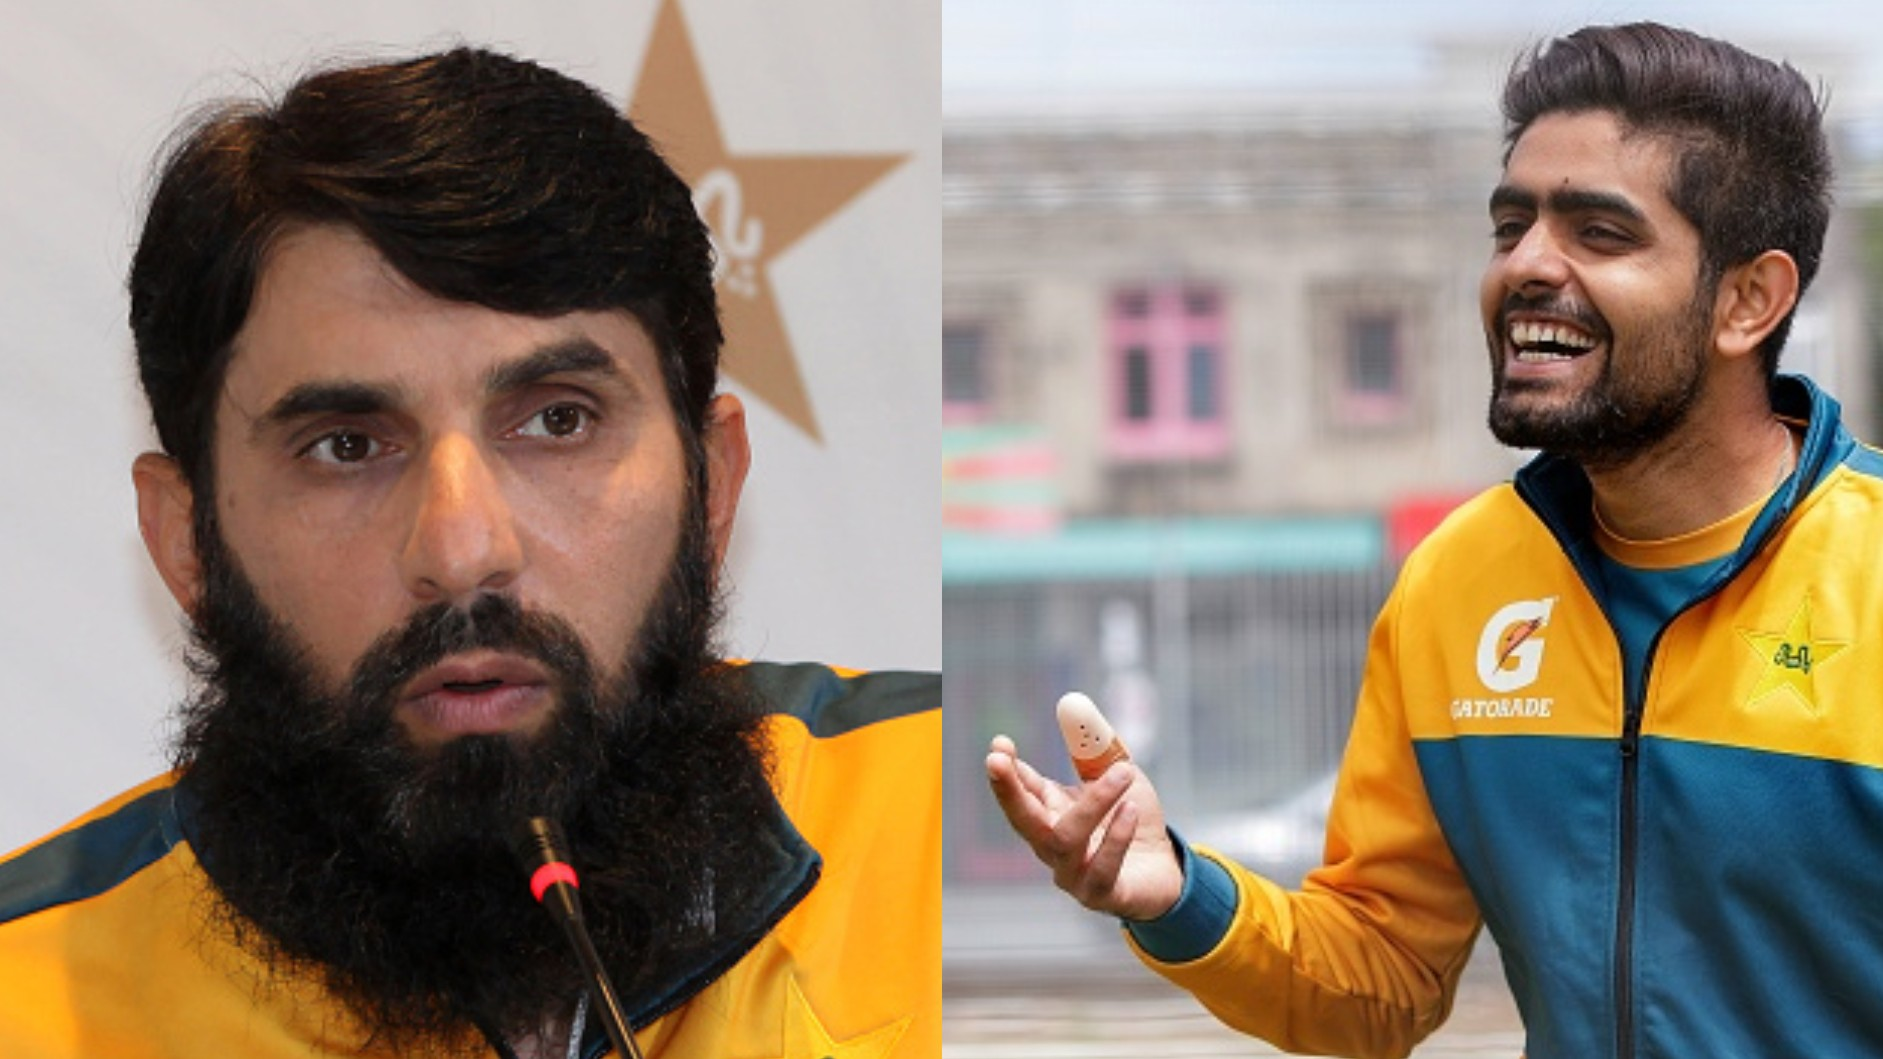 Misbah-Ul-Haq blames Babar's absence and extended quarantine for Pakistan's poor show in New Zealand